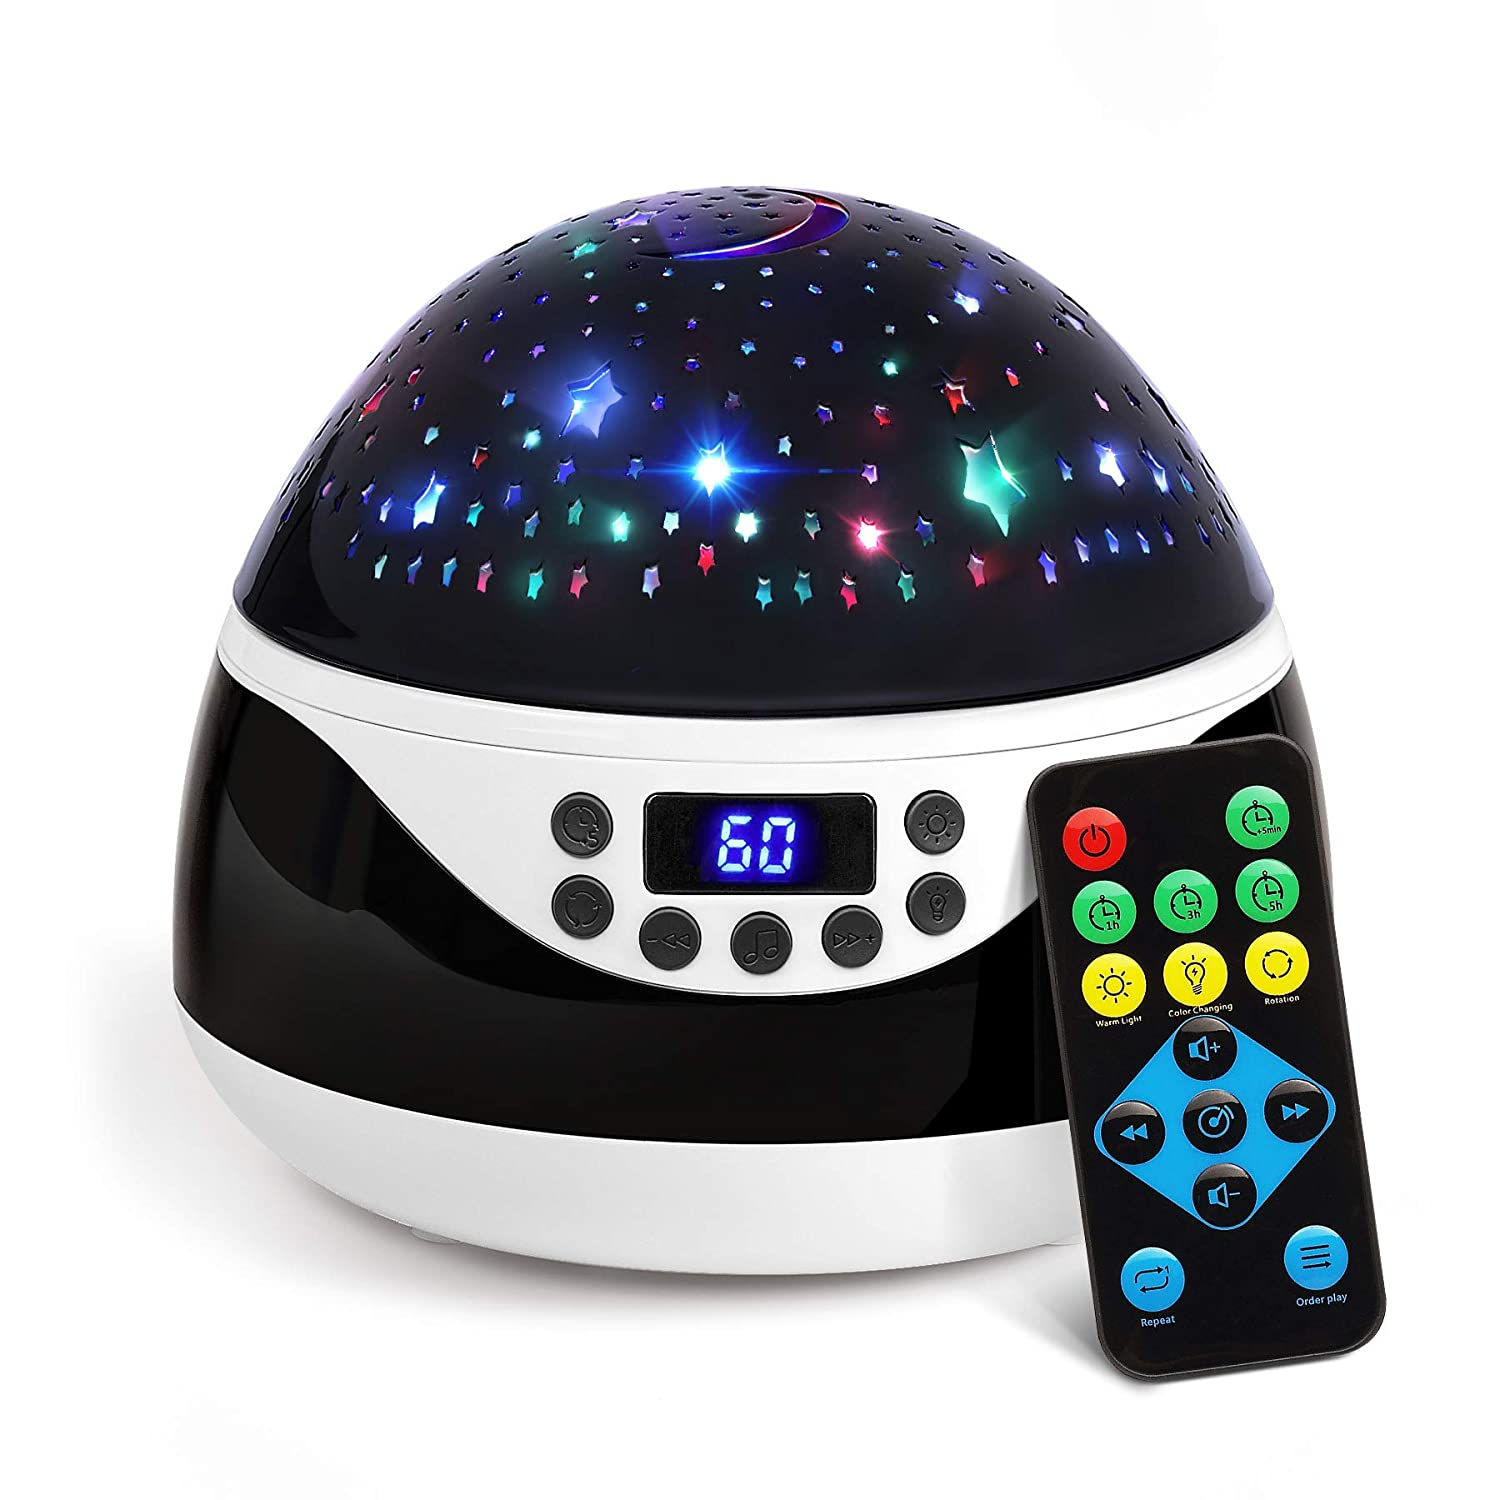 2019 Newest Baby Night Light, AnanBros Remote Control Star Projector with Timer Music Player, Rotating Star Night Light 9 Color Options, Best Night Lights for Kids Adults and Nursery Decor sleep music Sleep Music – Recommendable music gadgets for your family's good sleep 716iFTcsqtL